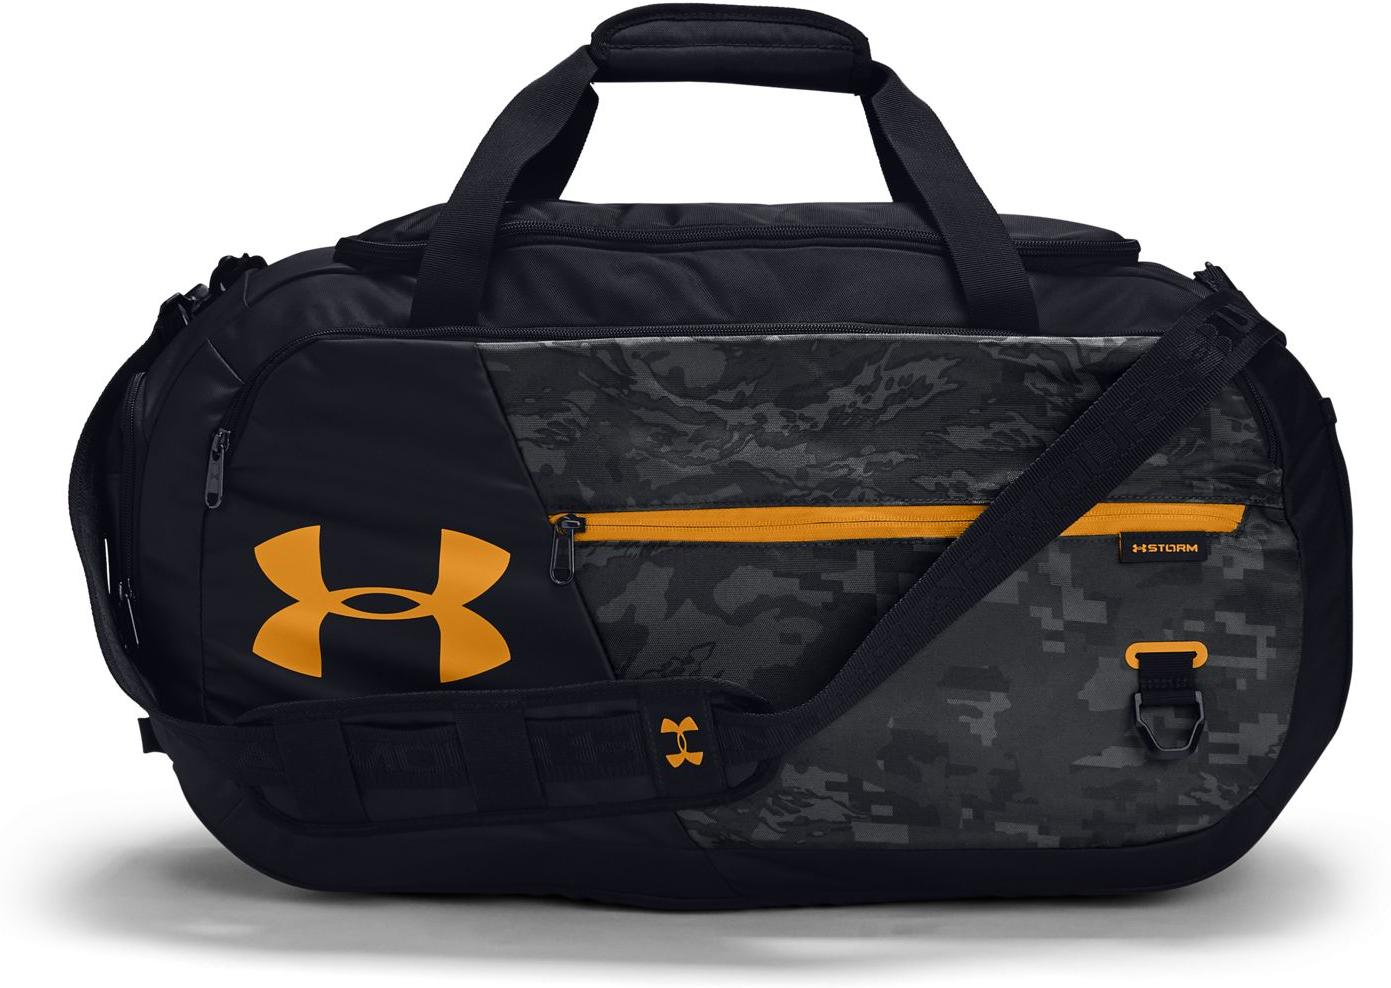 Tasche Under Armour Under ArmourU ndeniable Duffel 4.0 MD